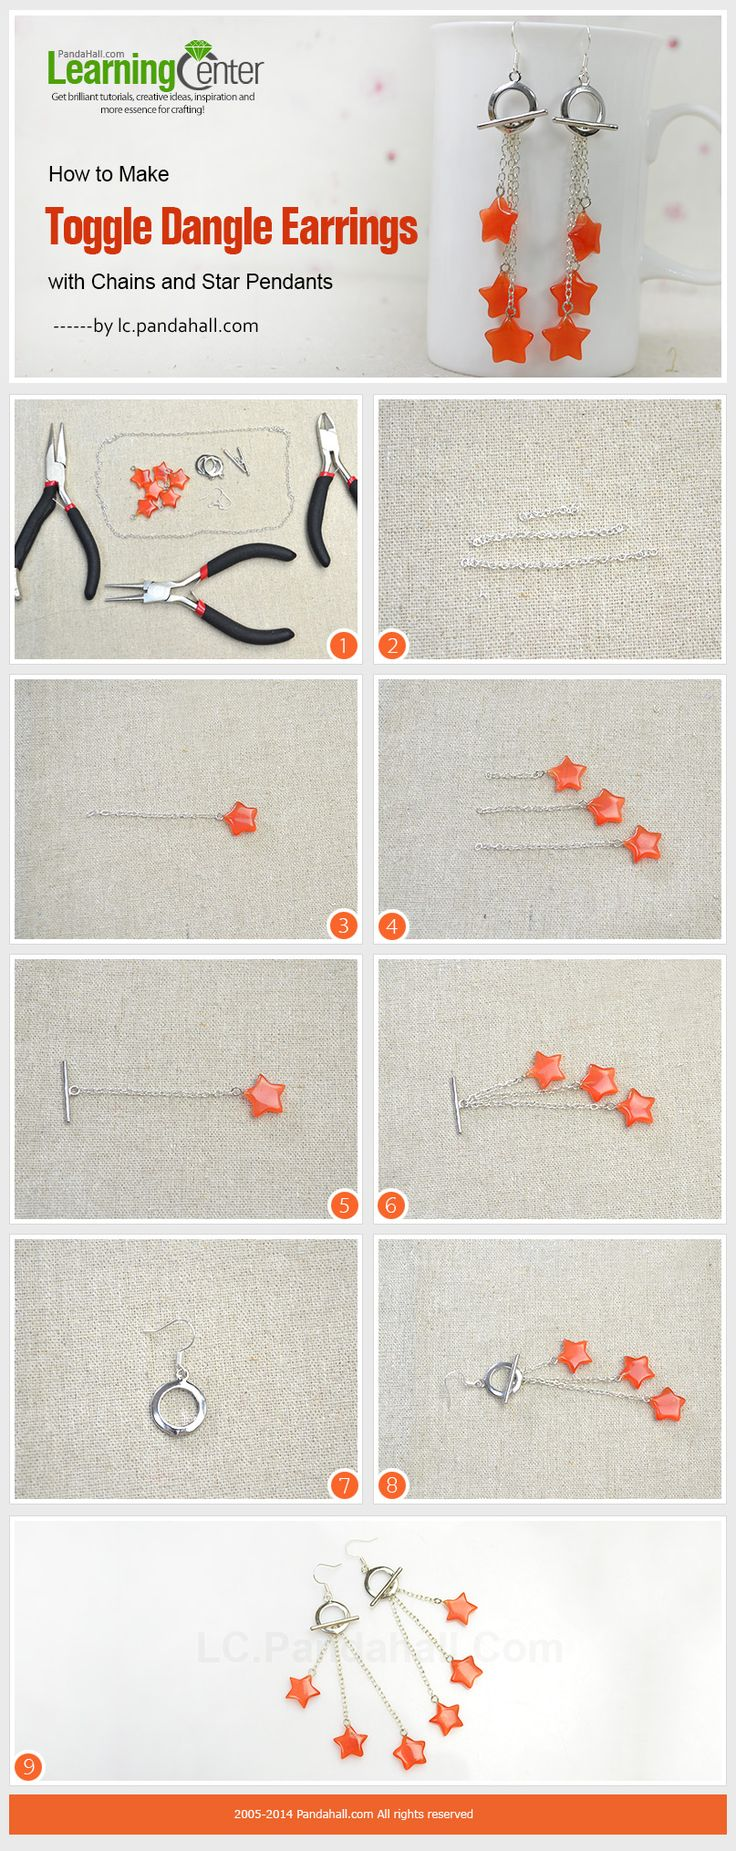 How to Make Toggle Dangle Earrings with Chains and Star Pendants